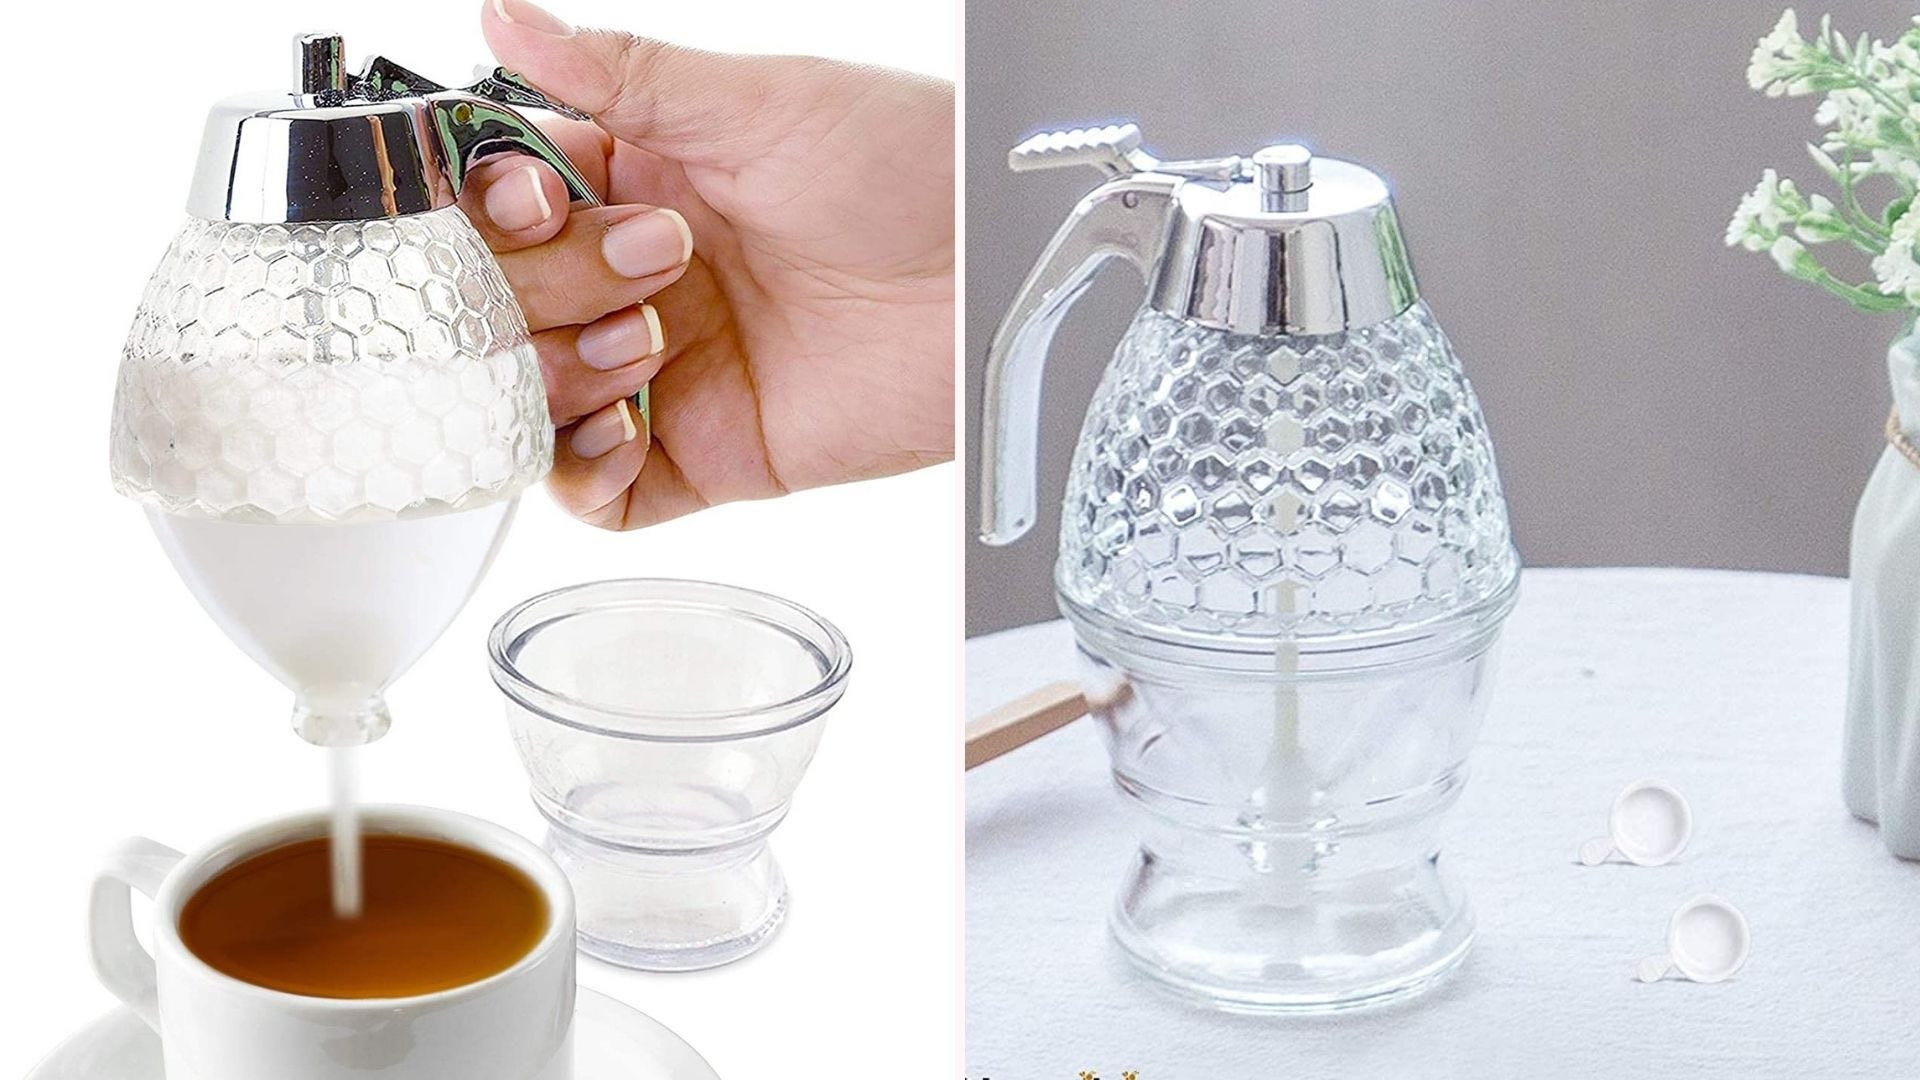 a glas beehive-patterned sugar dispenser pouring sugar into tea